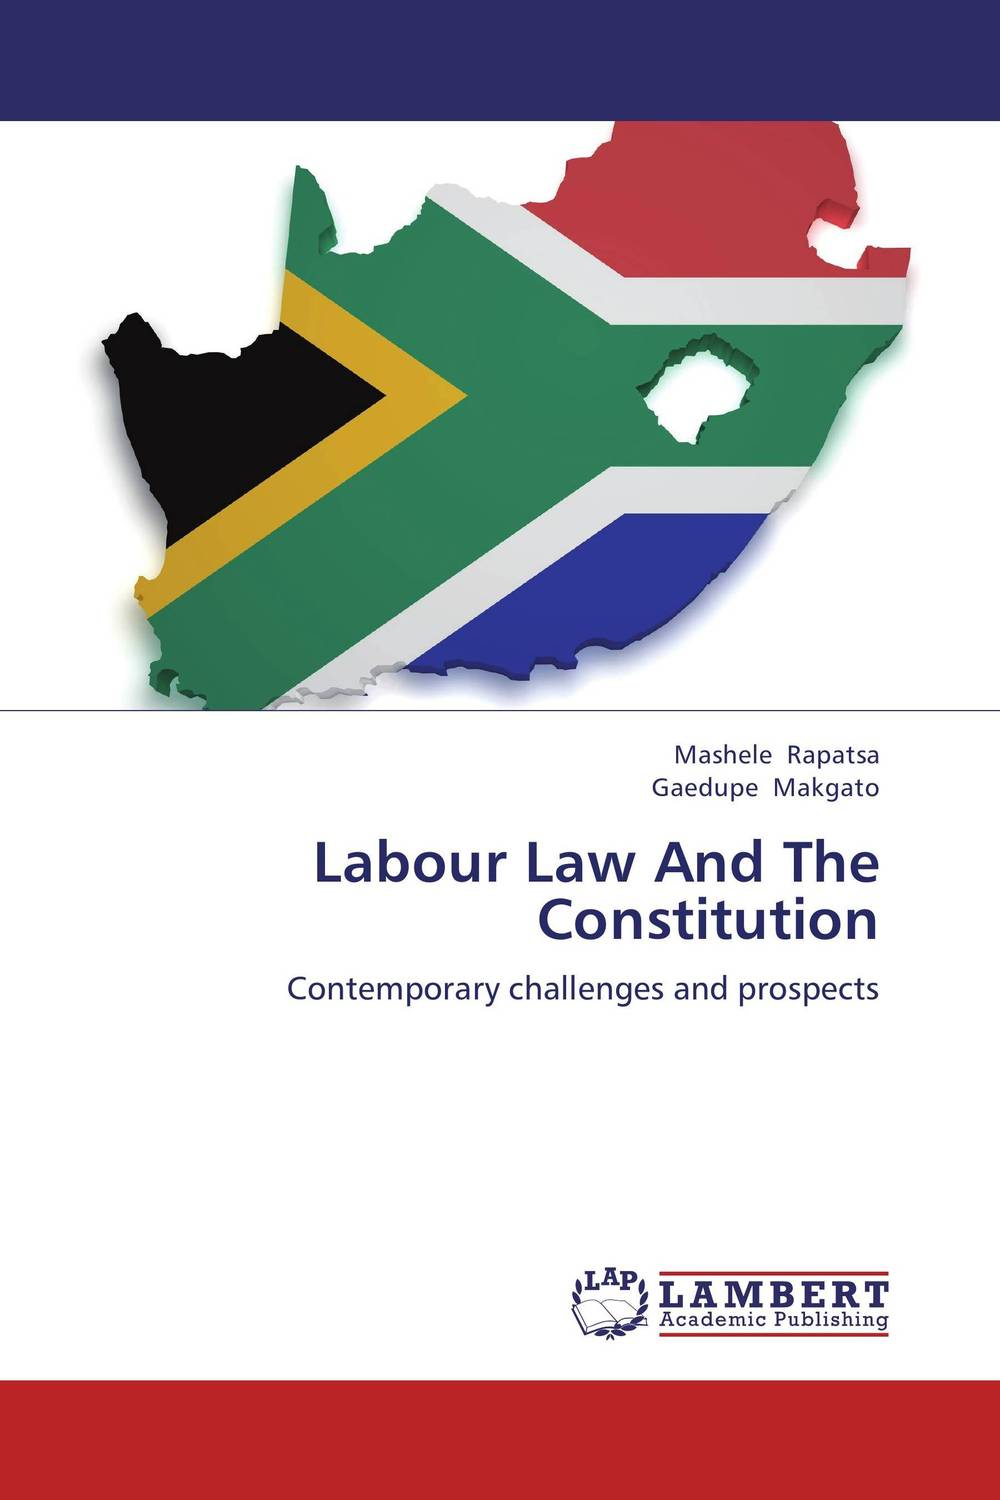 цена на Labour Law And The Constitution